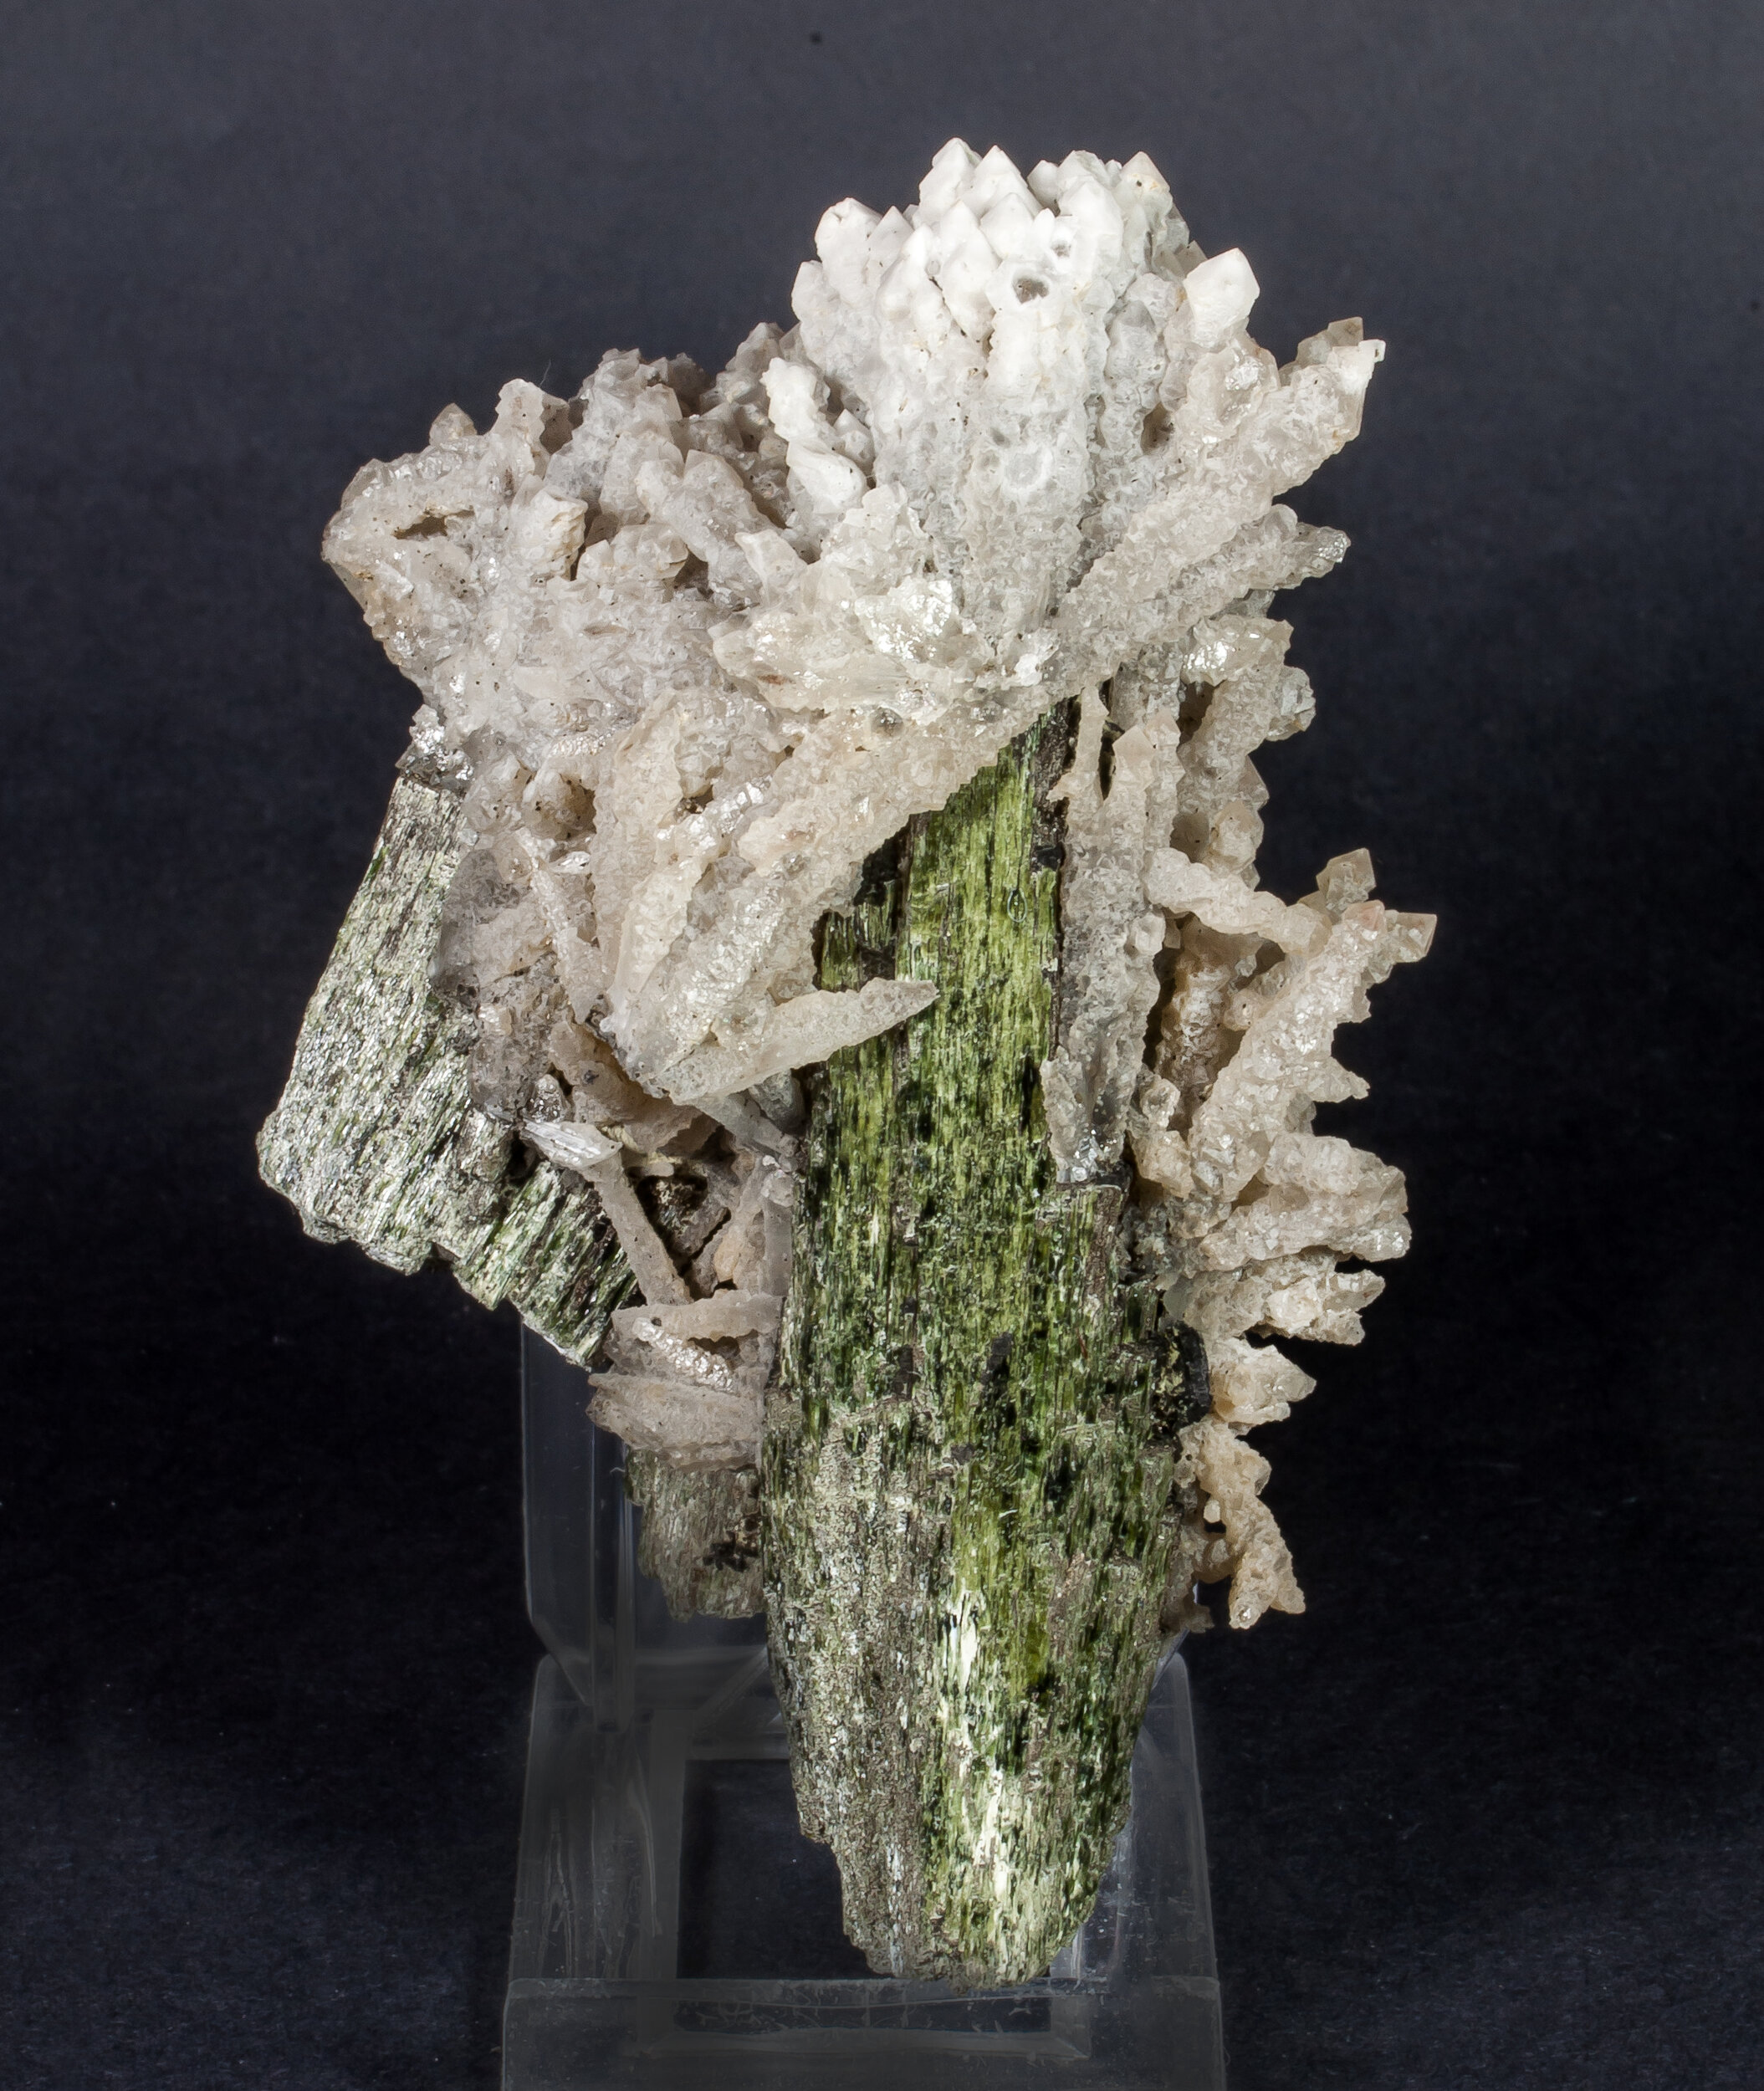 specimens/s_imagesAM7/Hedenbergite-MB47AM7s.jpg